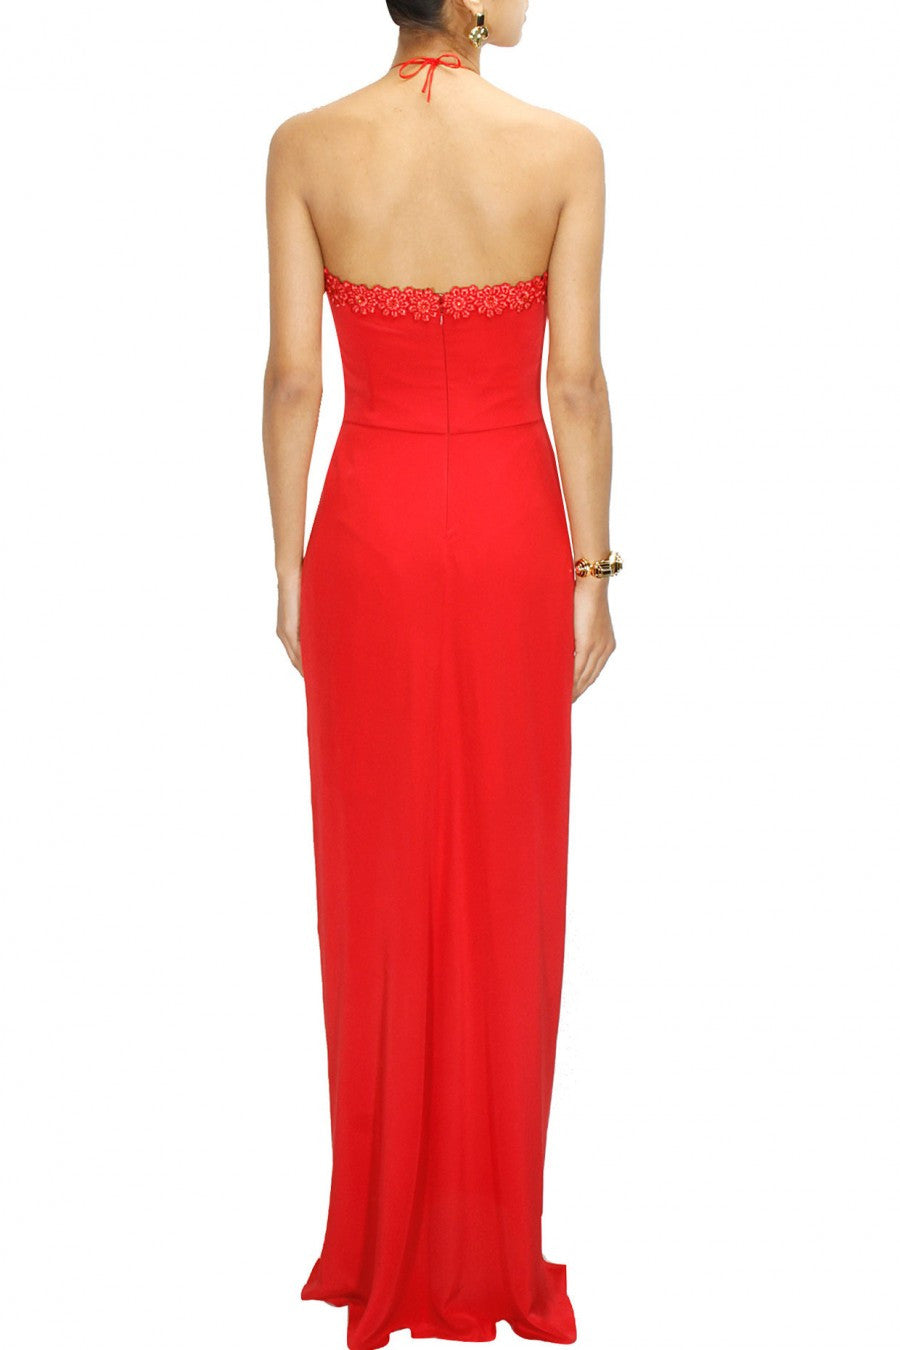 Coral Red color Gown